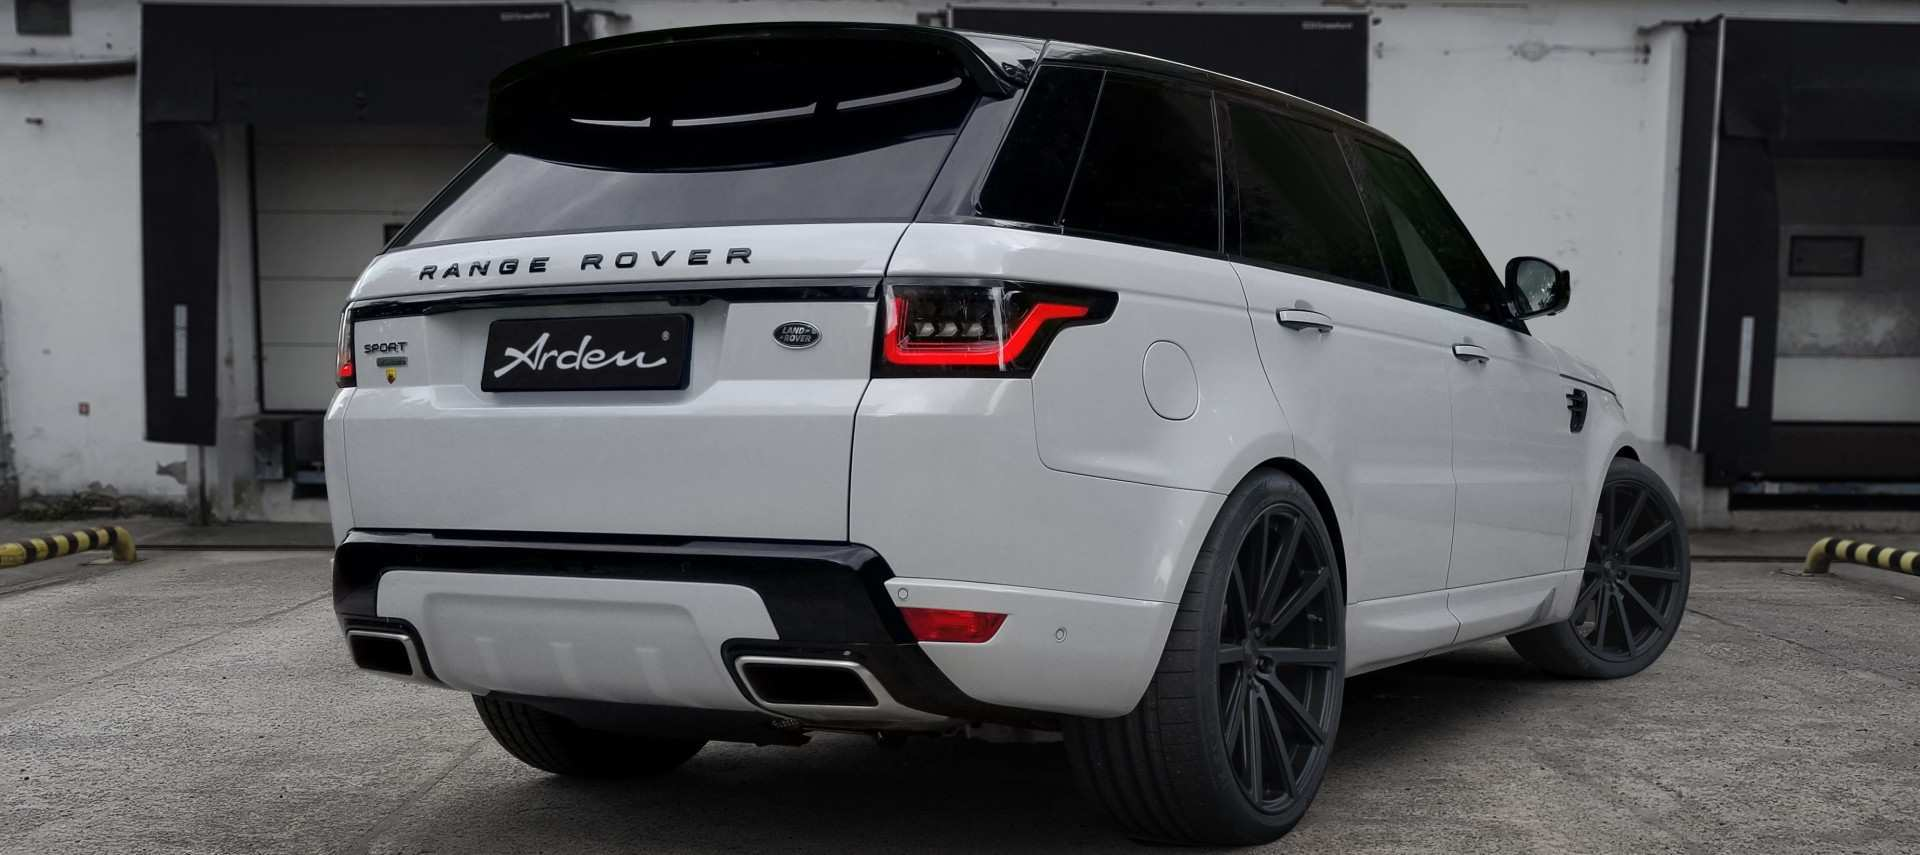 74 Gallery of Range Rover Sport Pictures Concept with Range Rover Sport Pictures